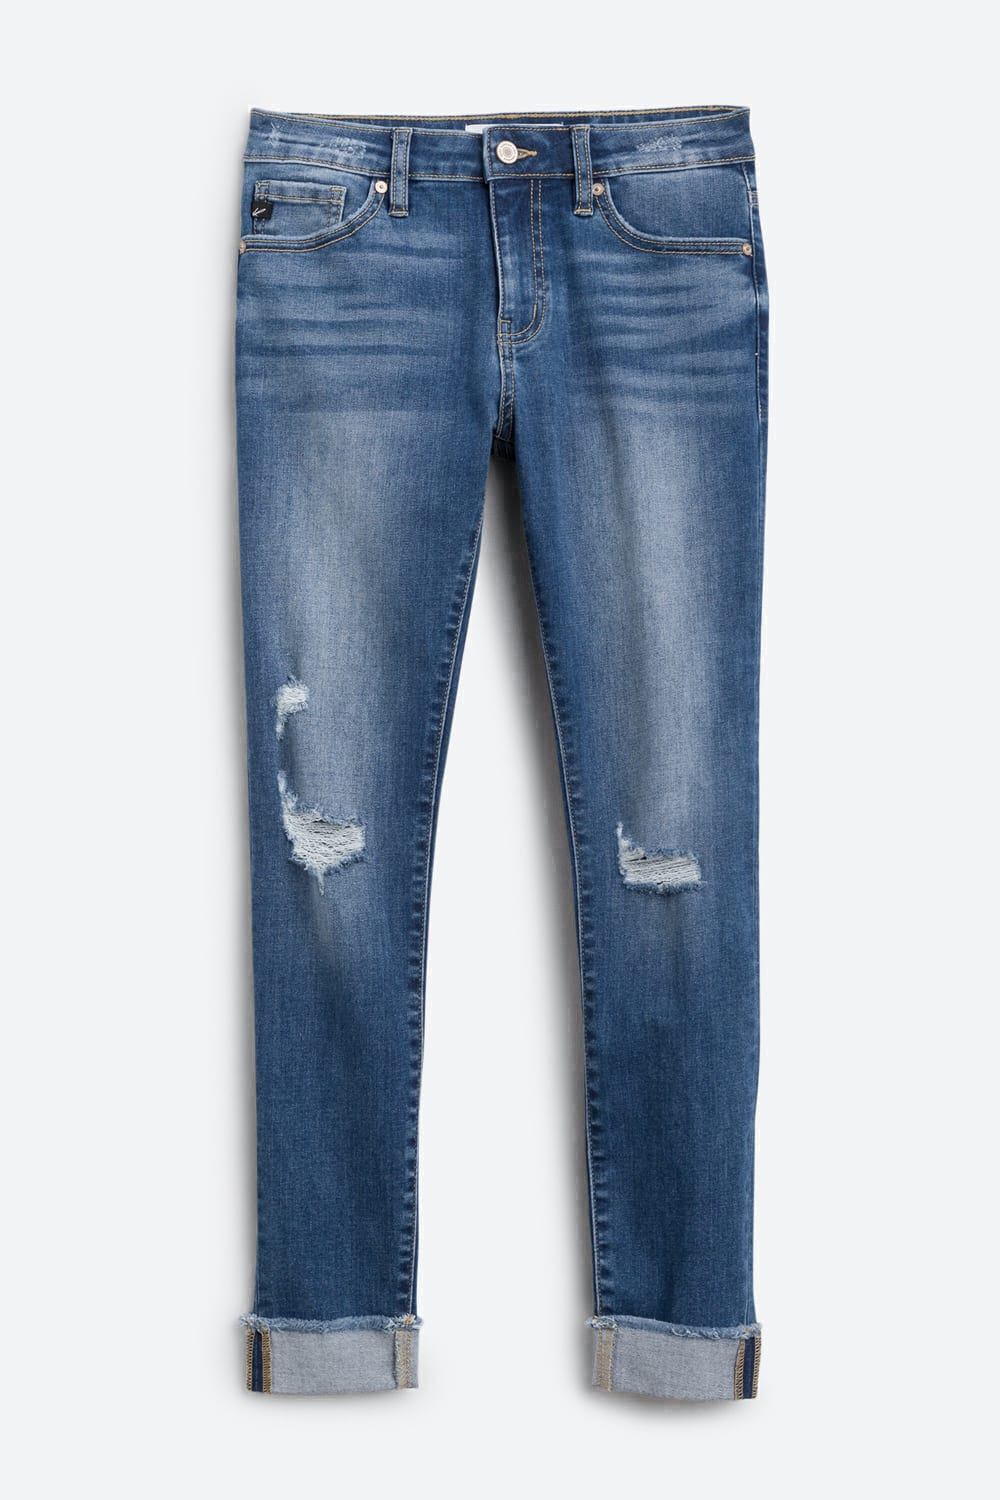 KAN CAN Annalise Skinny Distressed Frayed Hem Cuffed Jean 0 | Blue $58.00